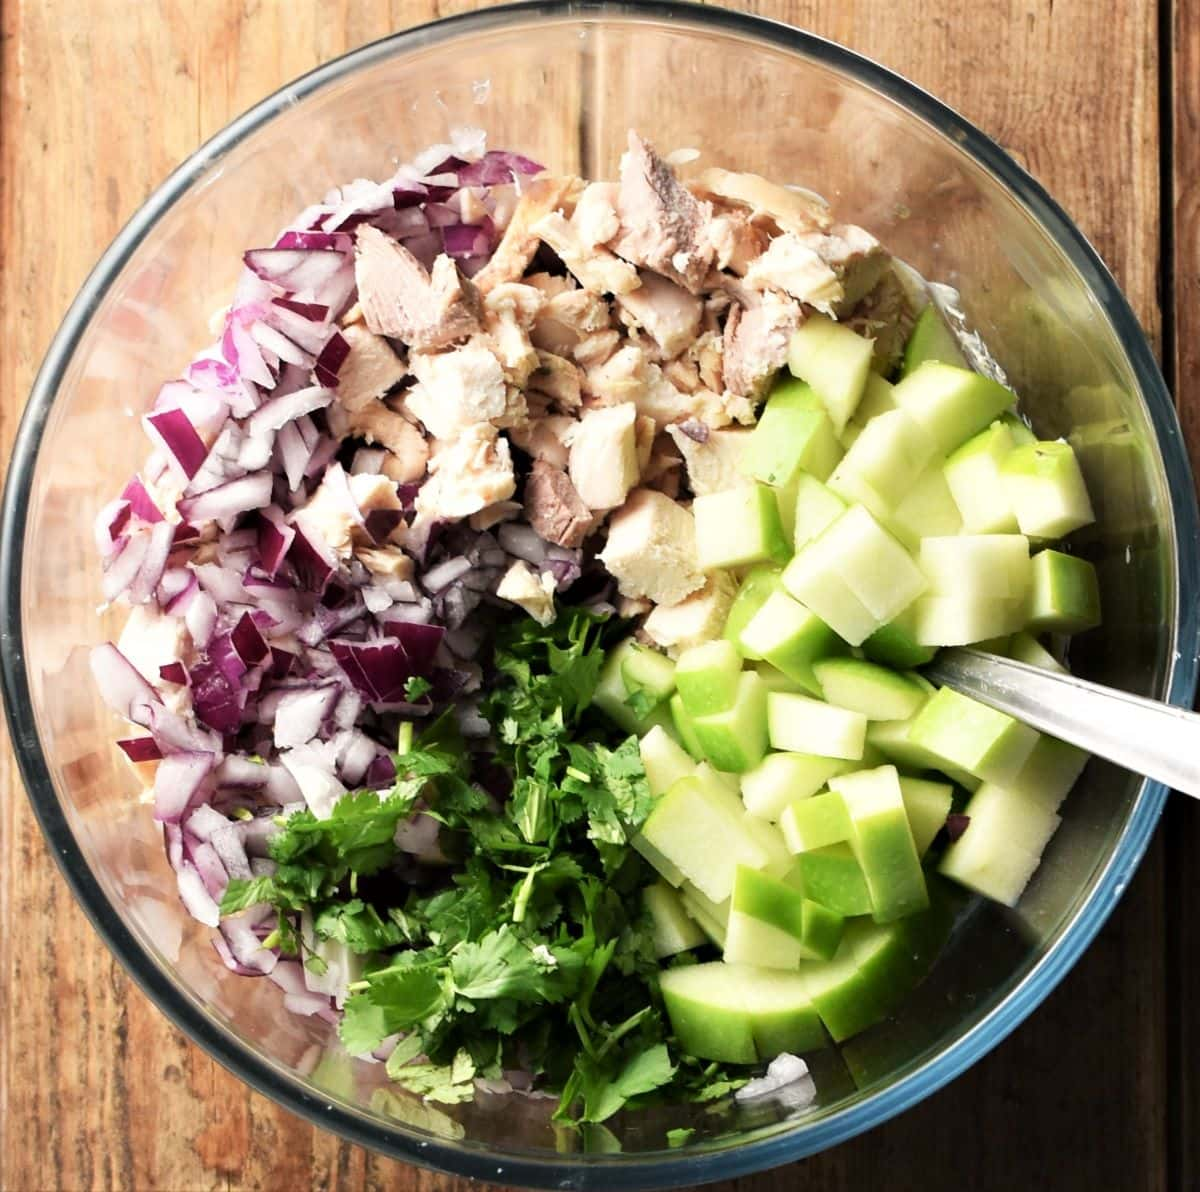 Chopped turkey, red onion, fresh herbs and apple in mixing bowl with spoon.